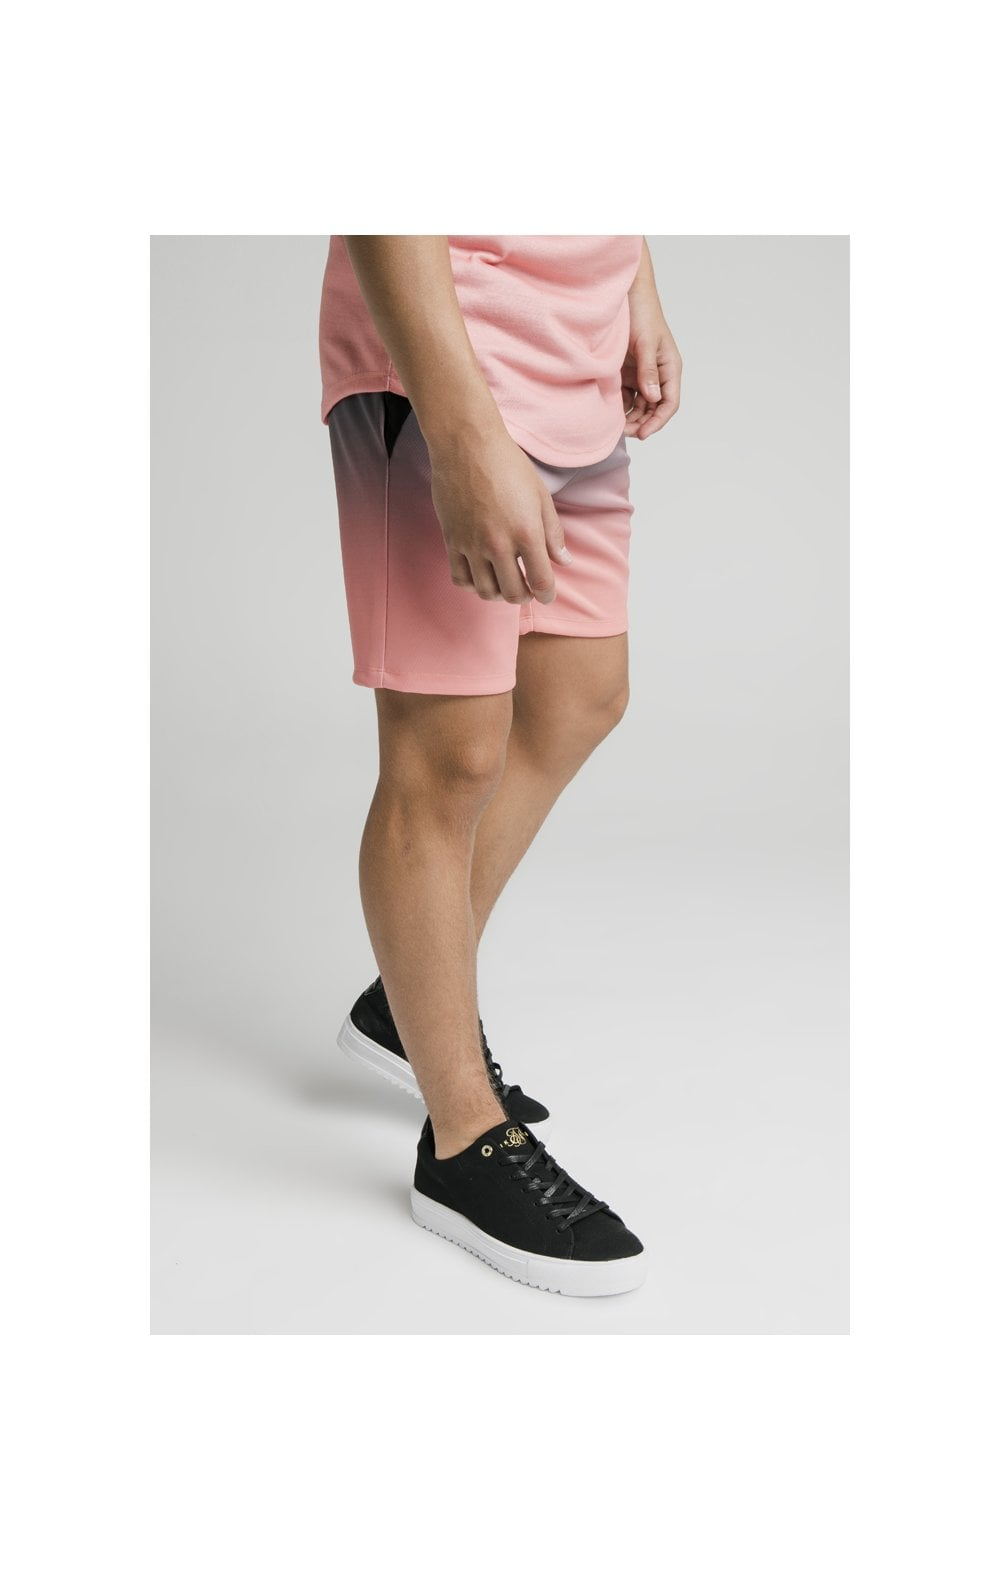 Illusive London Poly Fade Shorts - Grey & Peach (2)